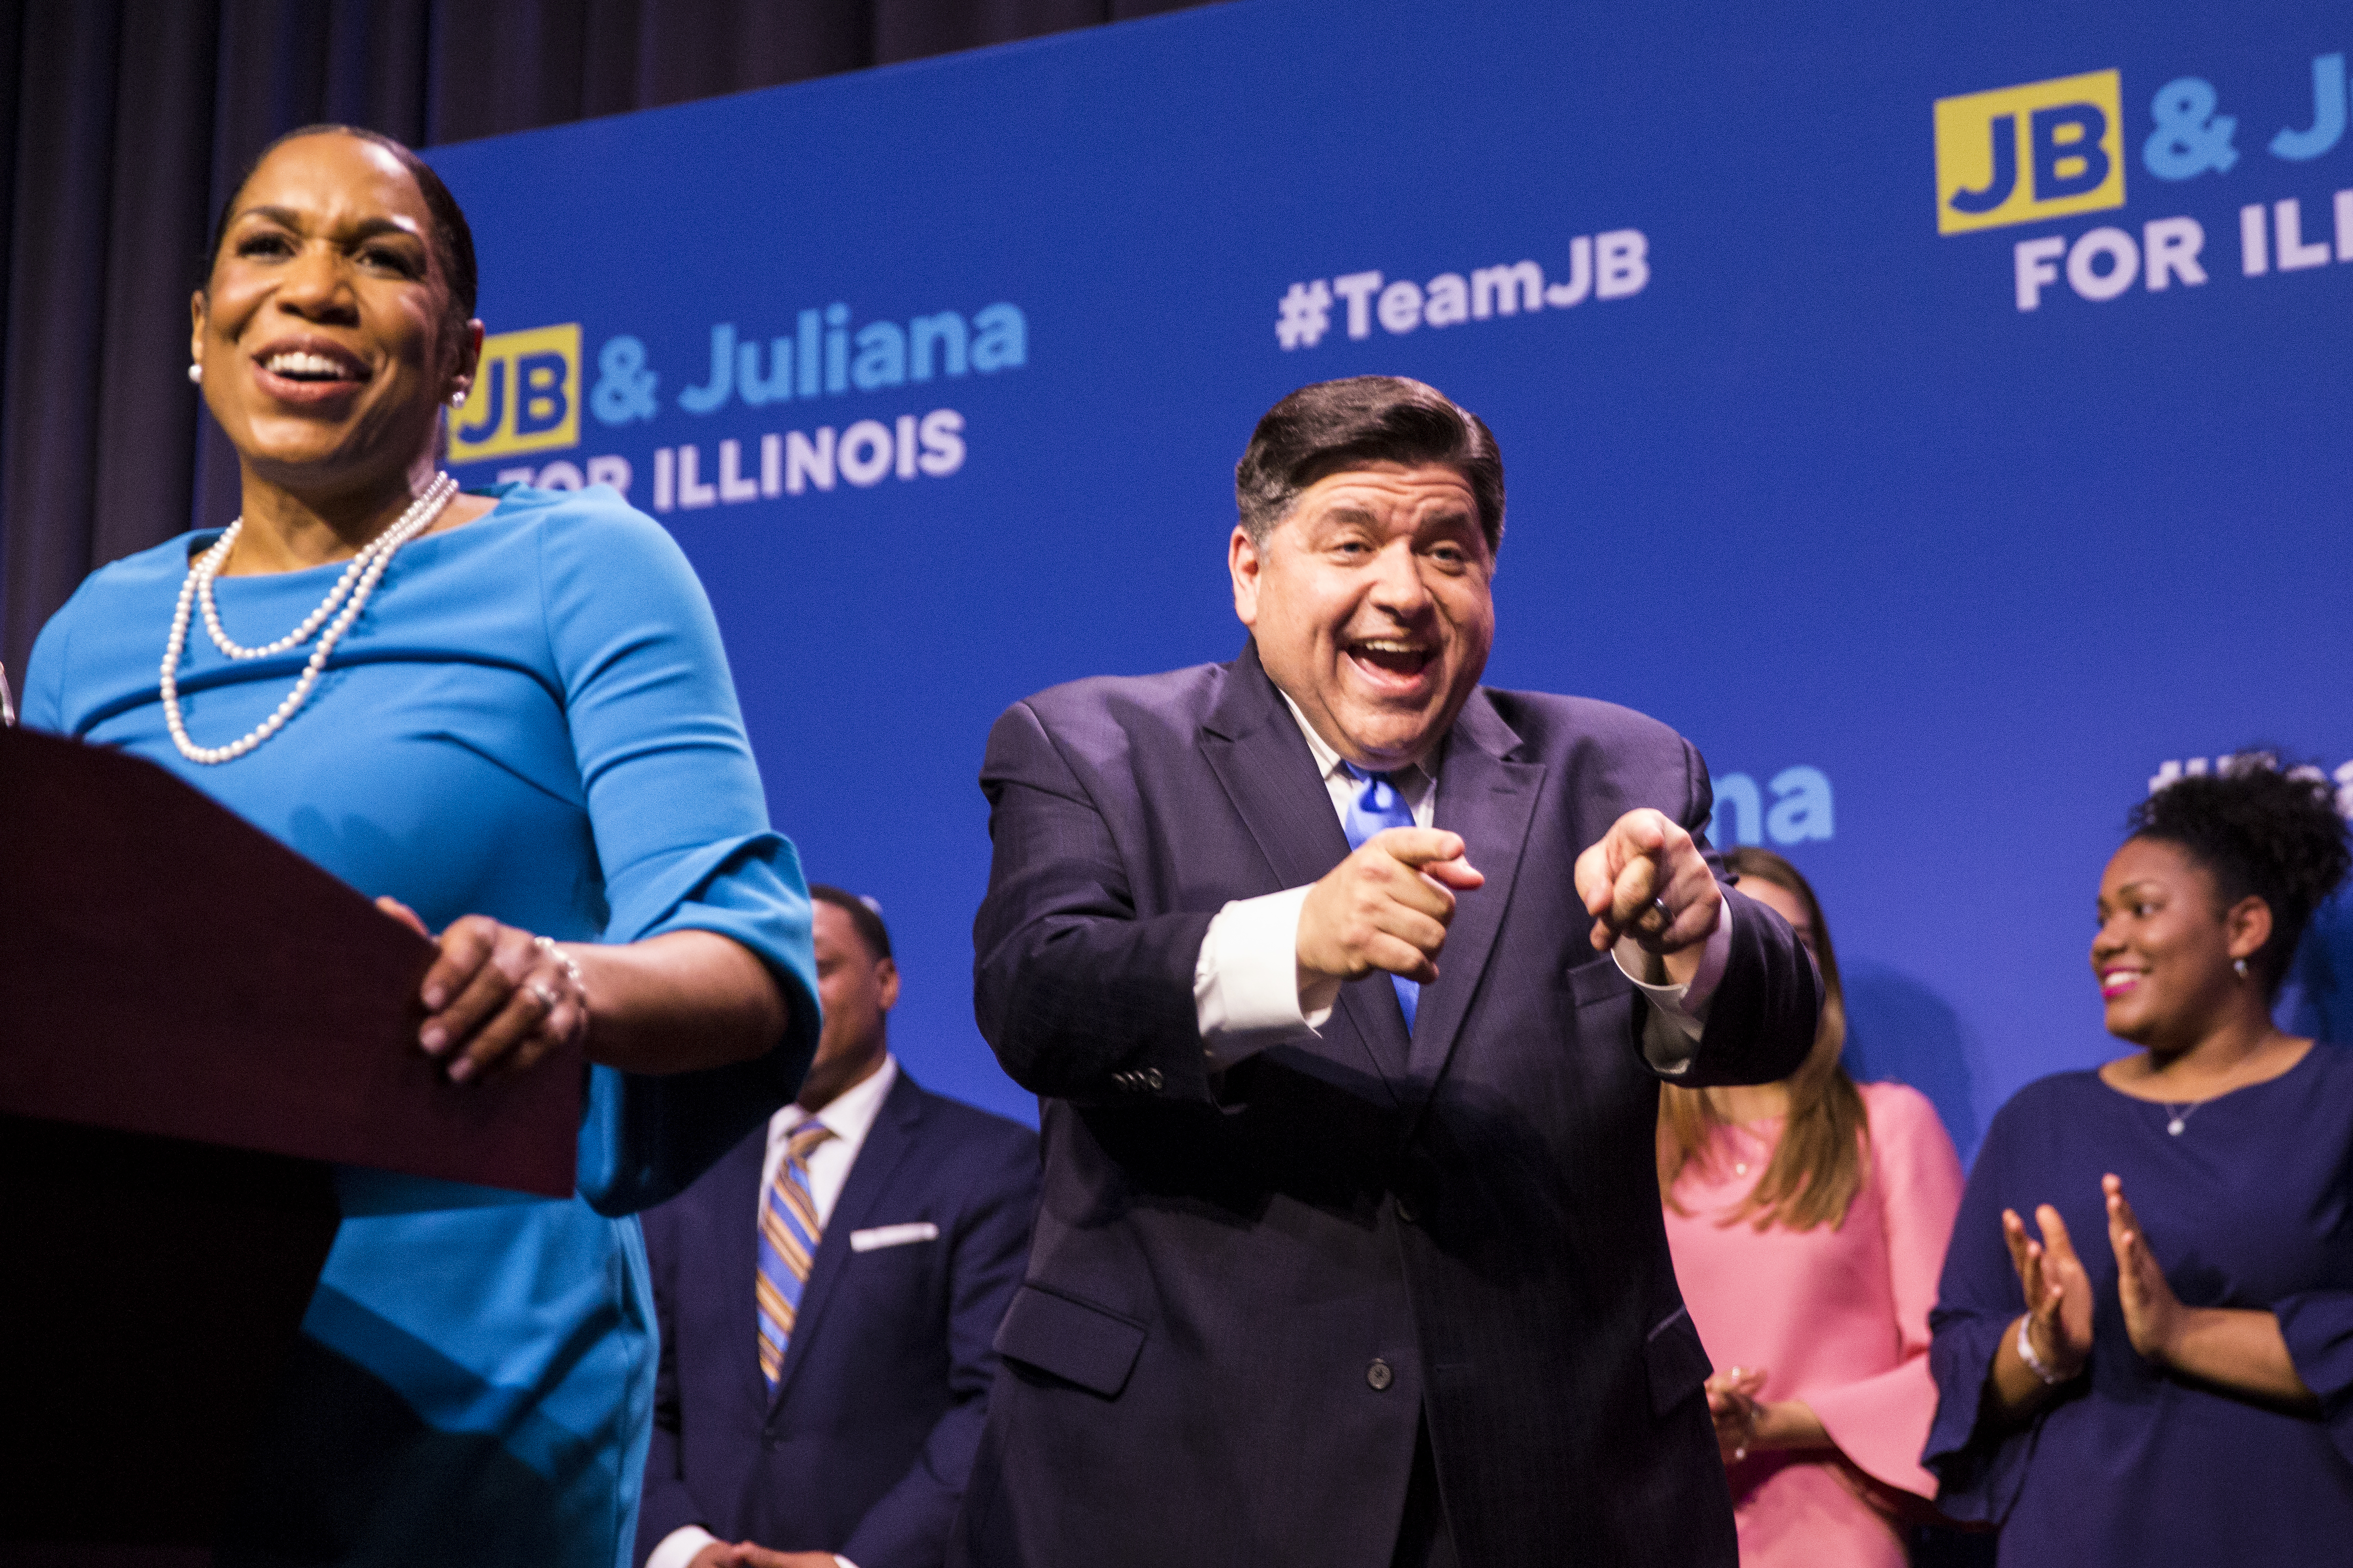 Gubernatorial candidate J.B. Pritzker and his running mate, Juliana Stratton, celebrate their win in the Democratic primary on Tuesday. | Ashlee Rezin/Sun-Times